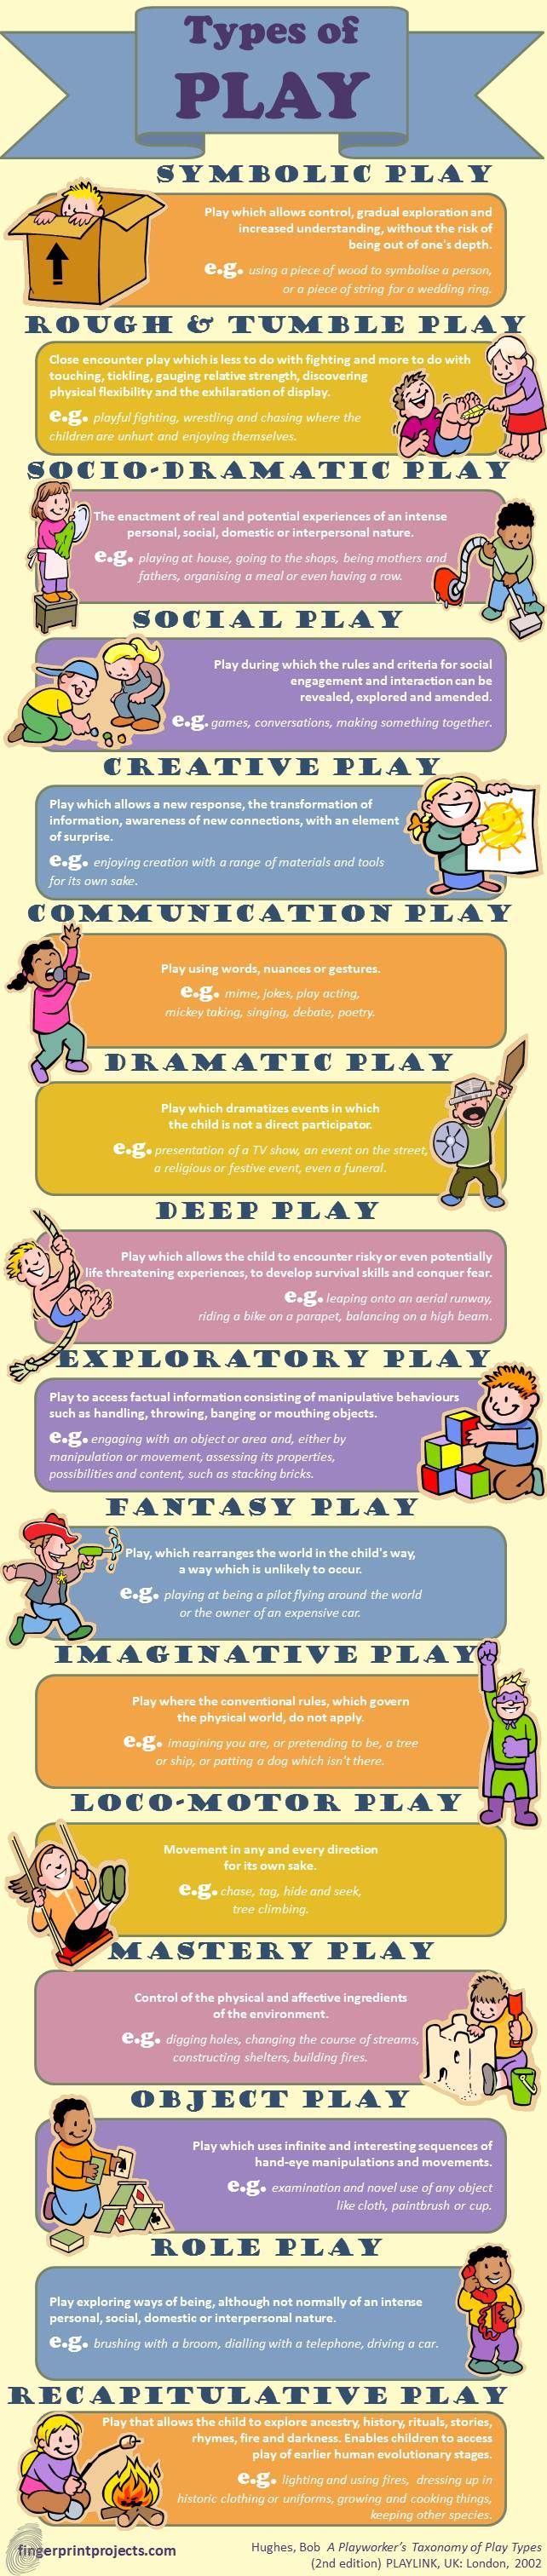 Infographic - Types of play for learning in childhood